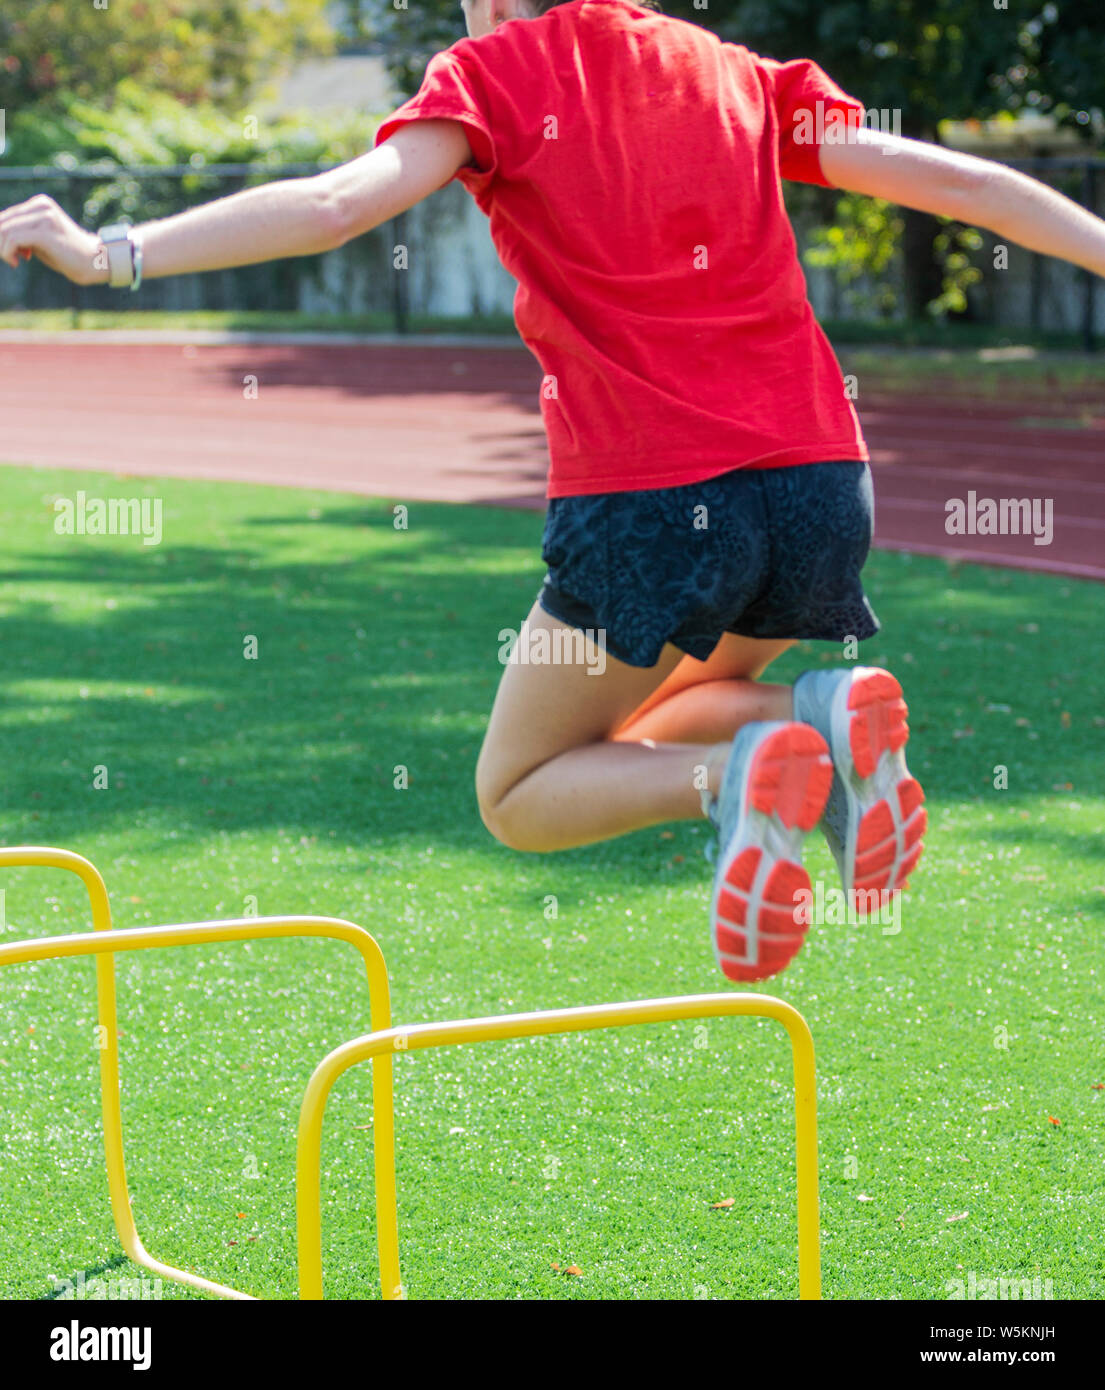 A high school teenage girl is jumping over two foot high yellow mini hurdles during track and field practice on a green turf field. Stock Photo